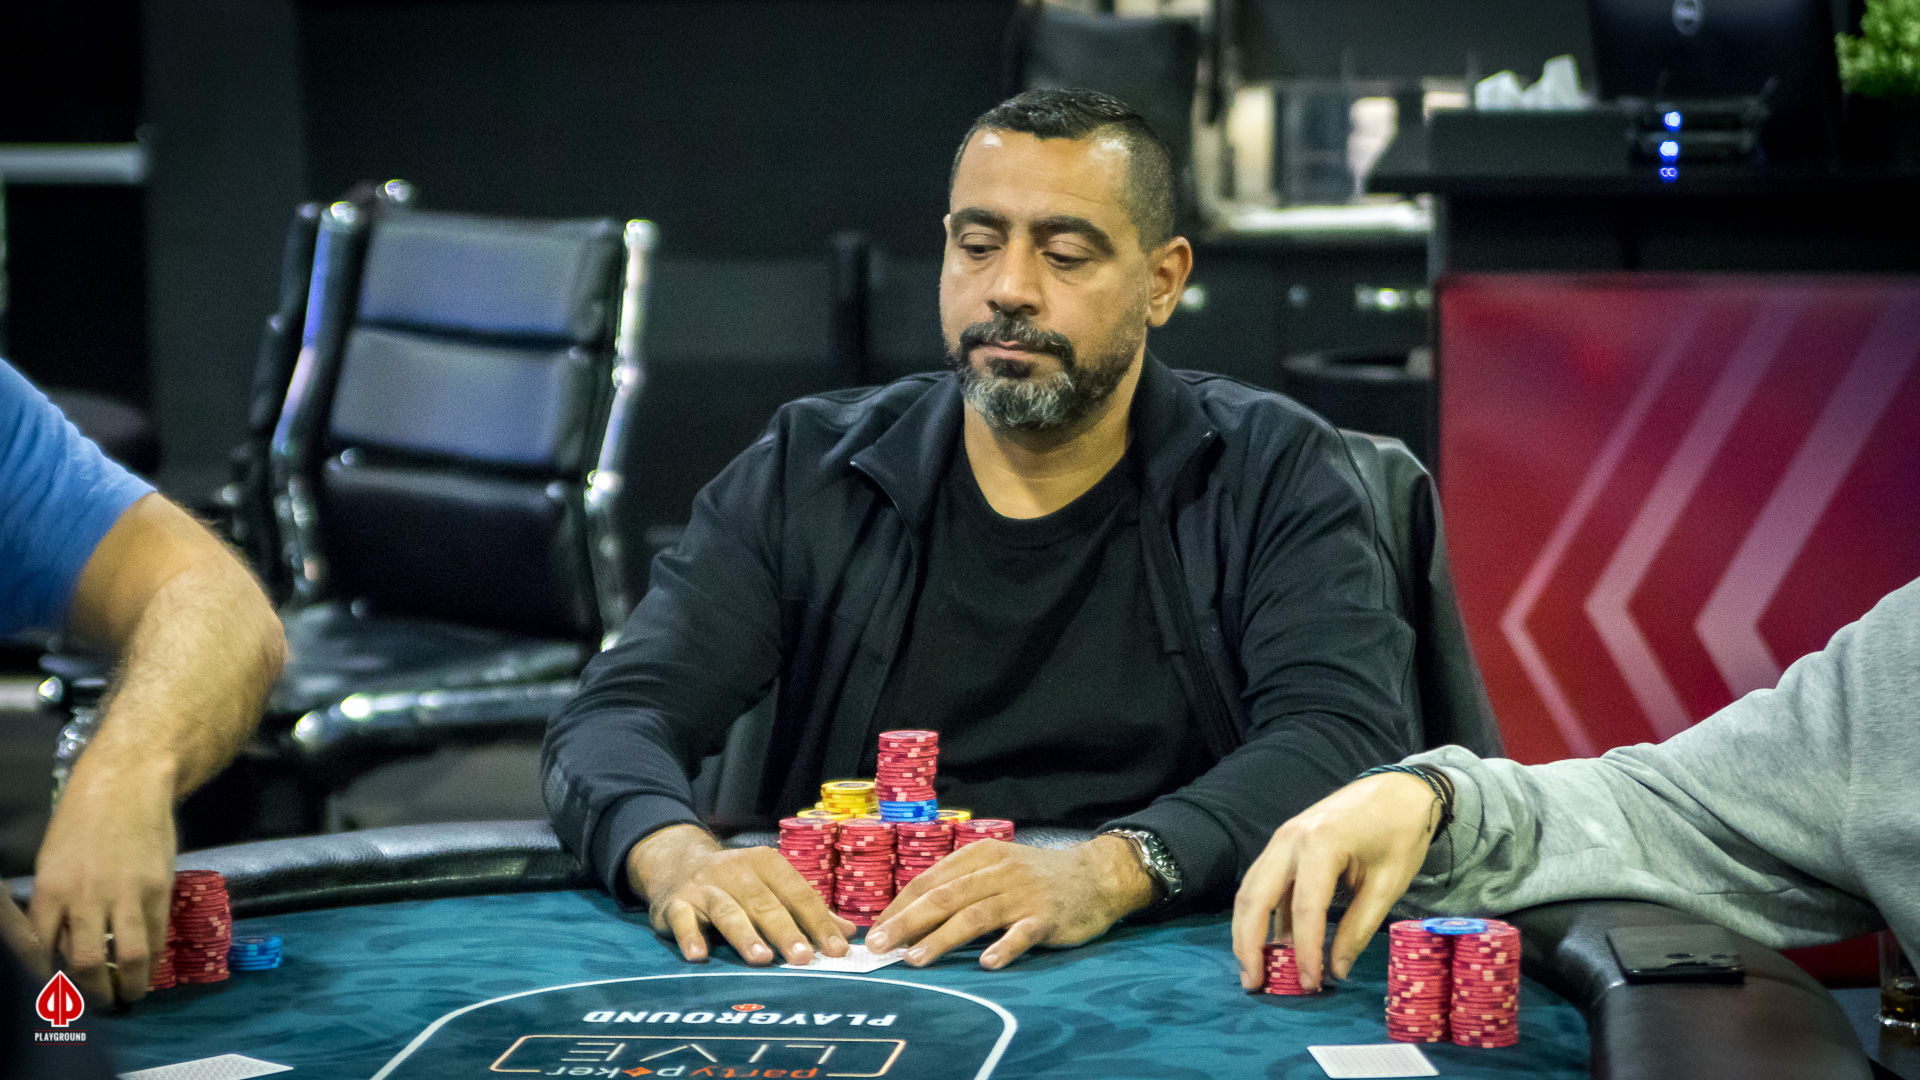 Abdelhamid flops a set in 3-way all in